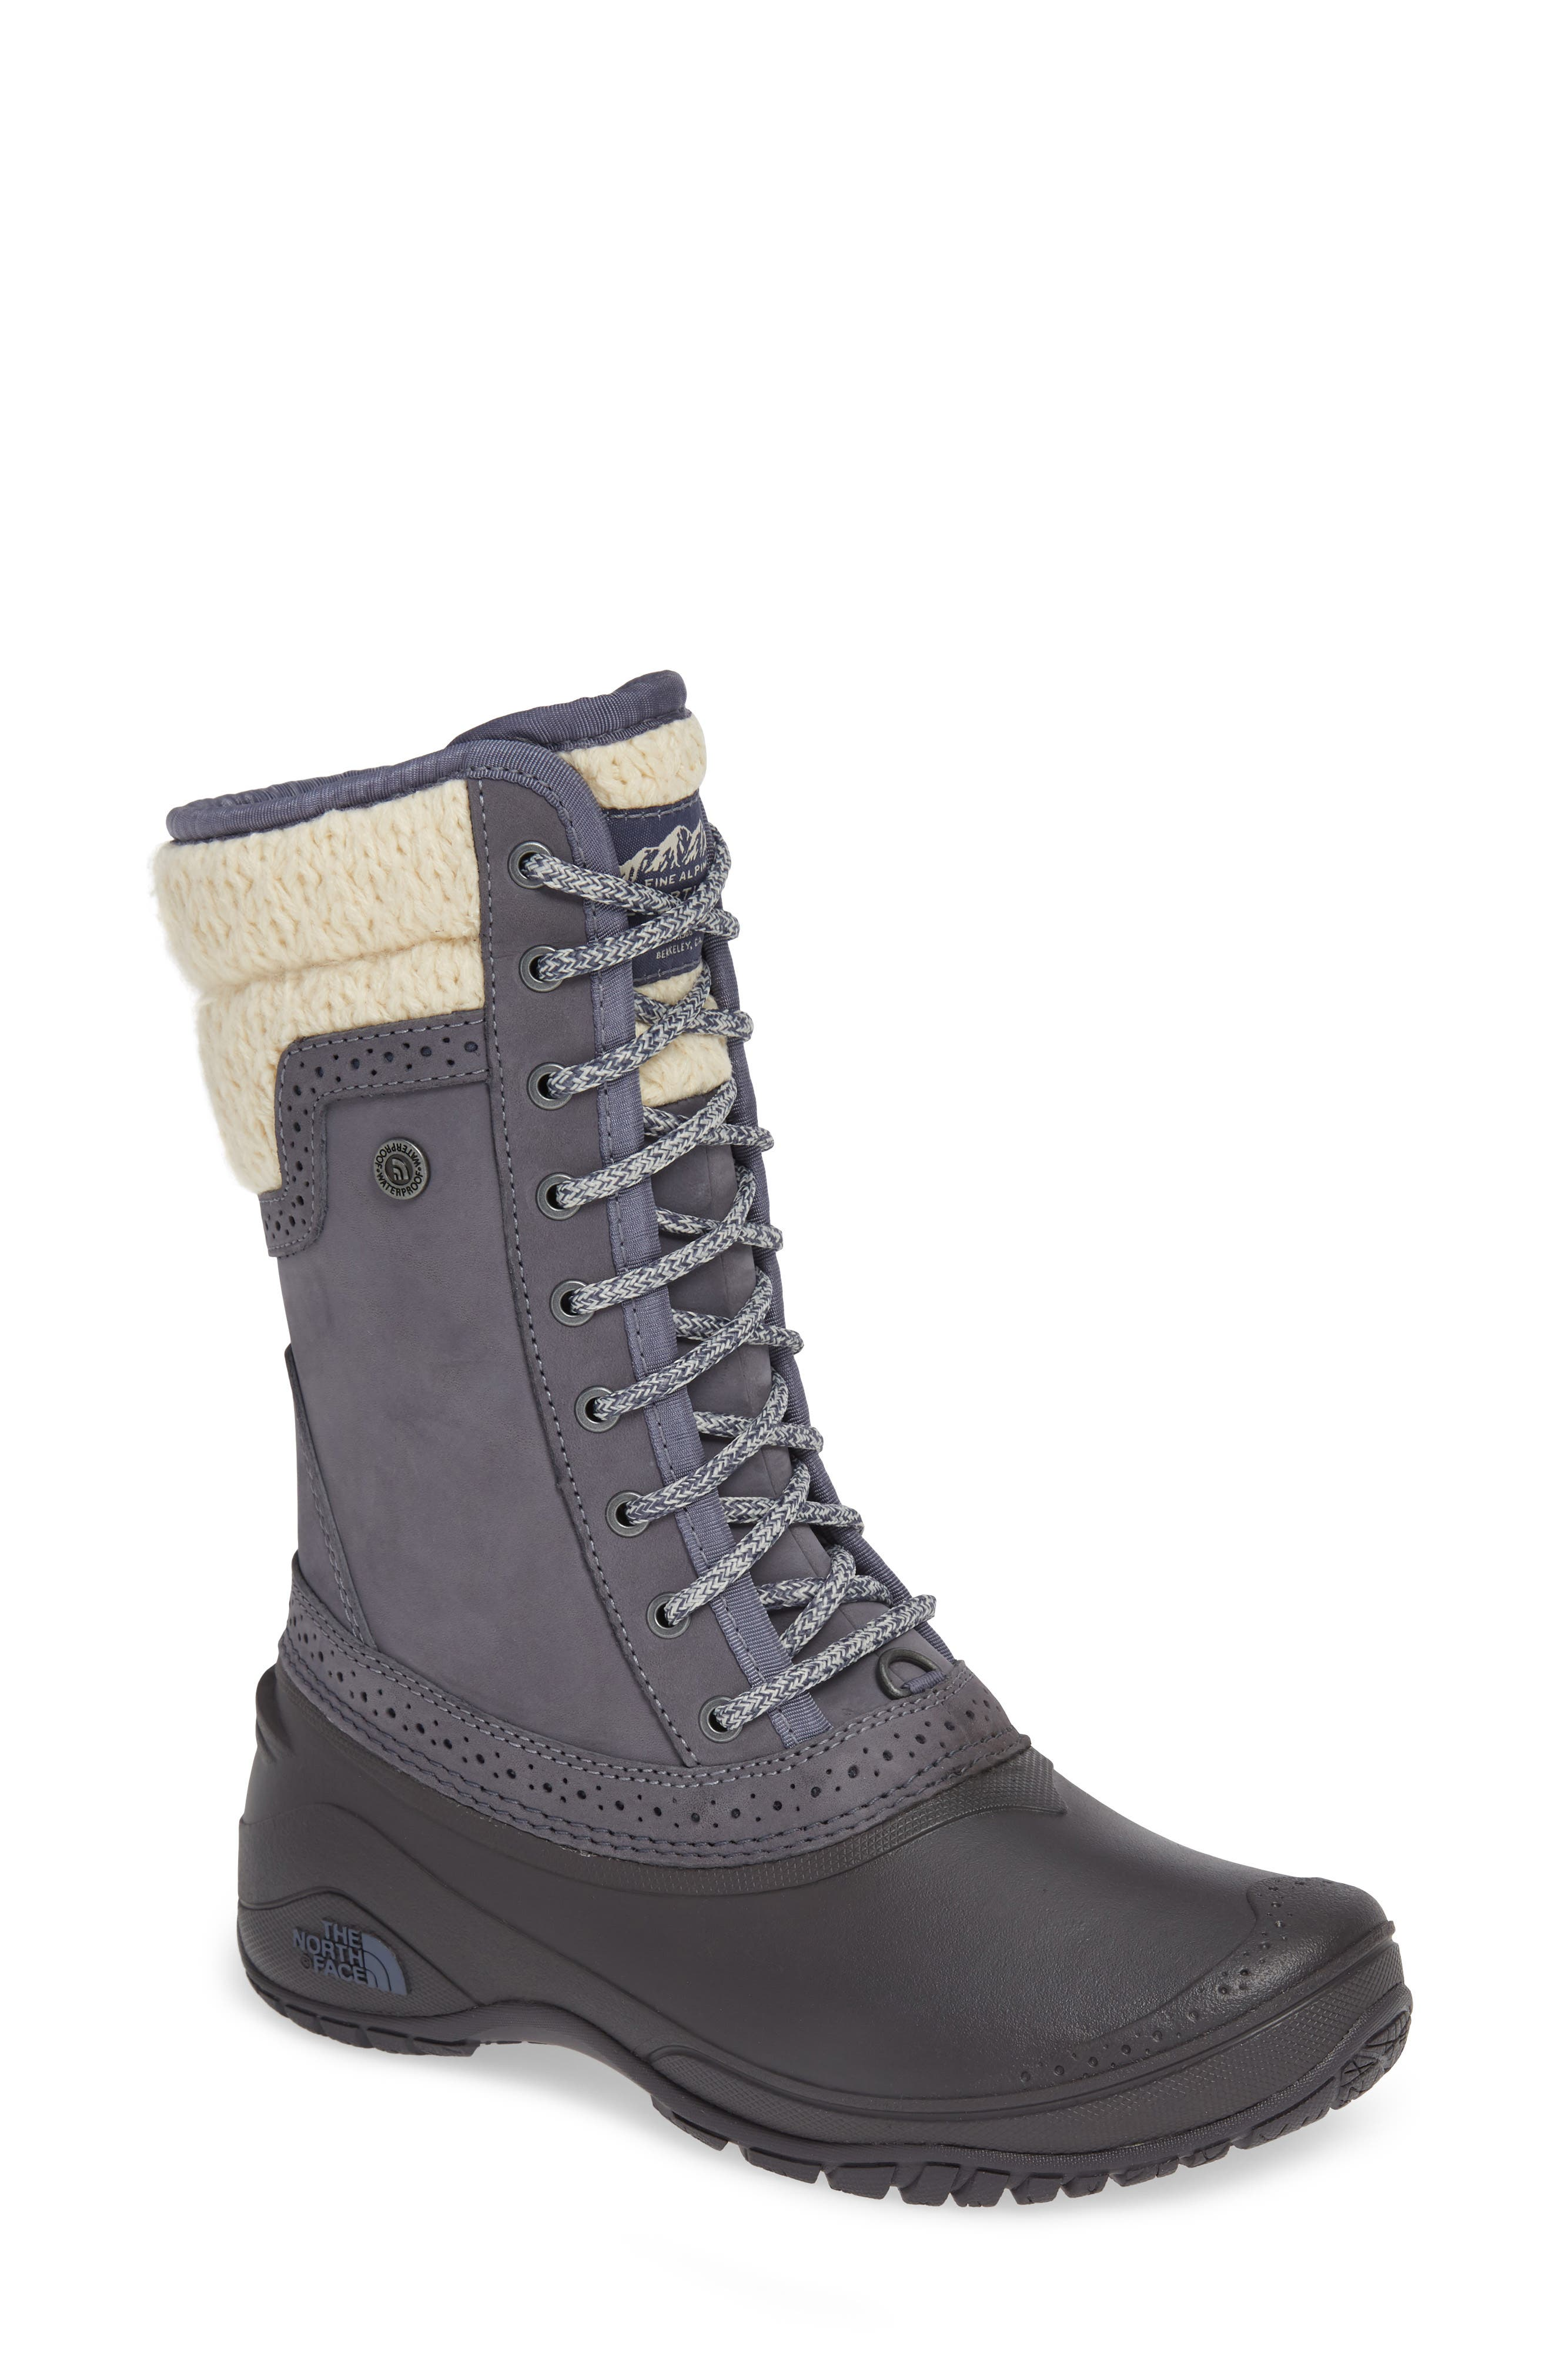 THE NORTH FACE, Shellista Waterproof Insulated Snow Boot, Main thumbnail 1, color, GRISAILLE GREY/ VINTAGE WHITE